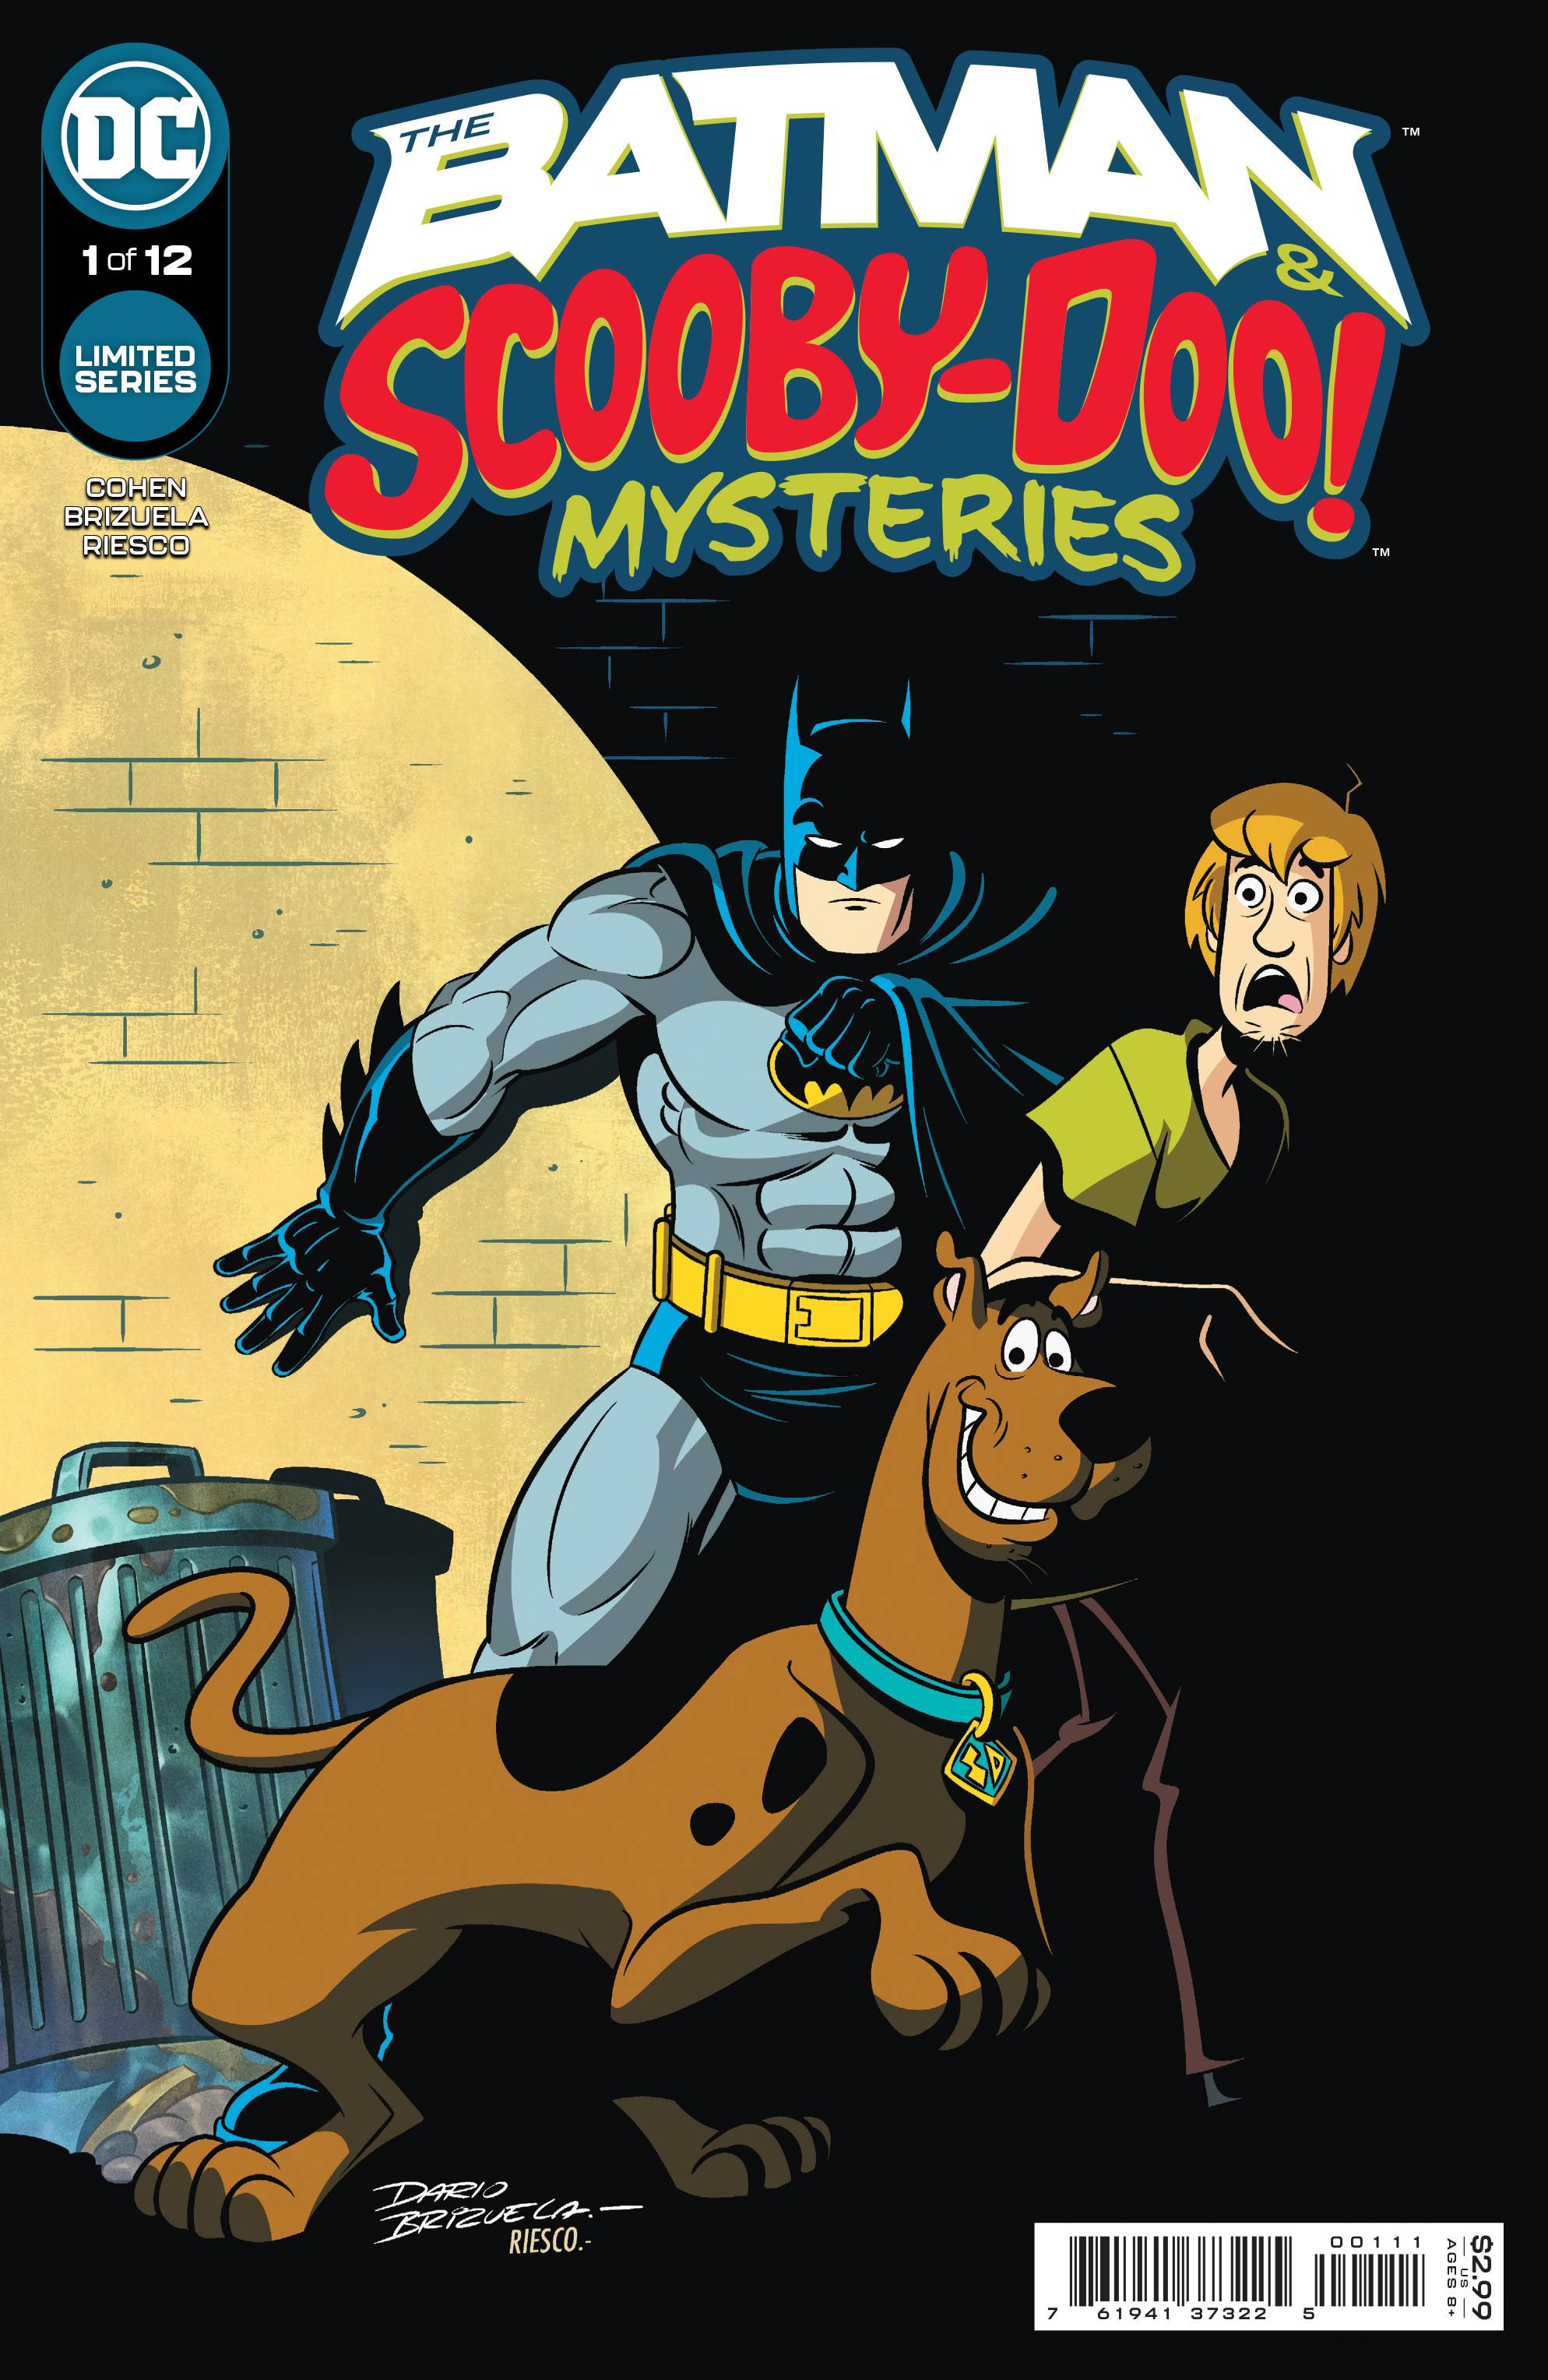 BATMAN & SCOOBY DOO MYSTERIES #1